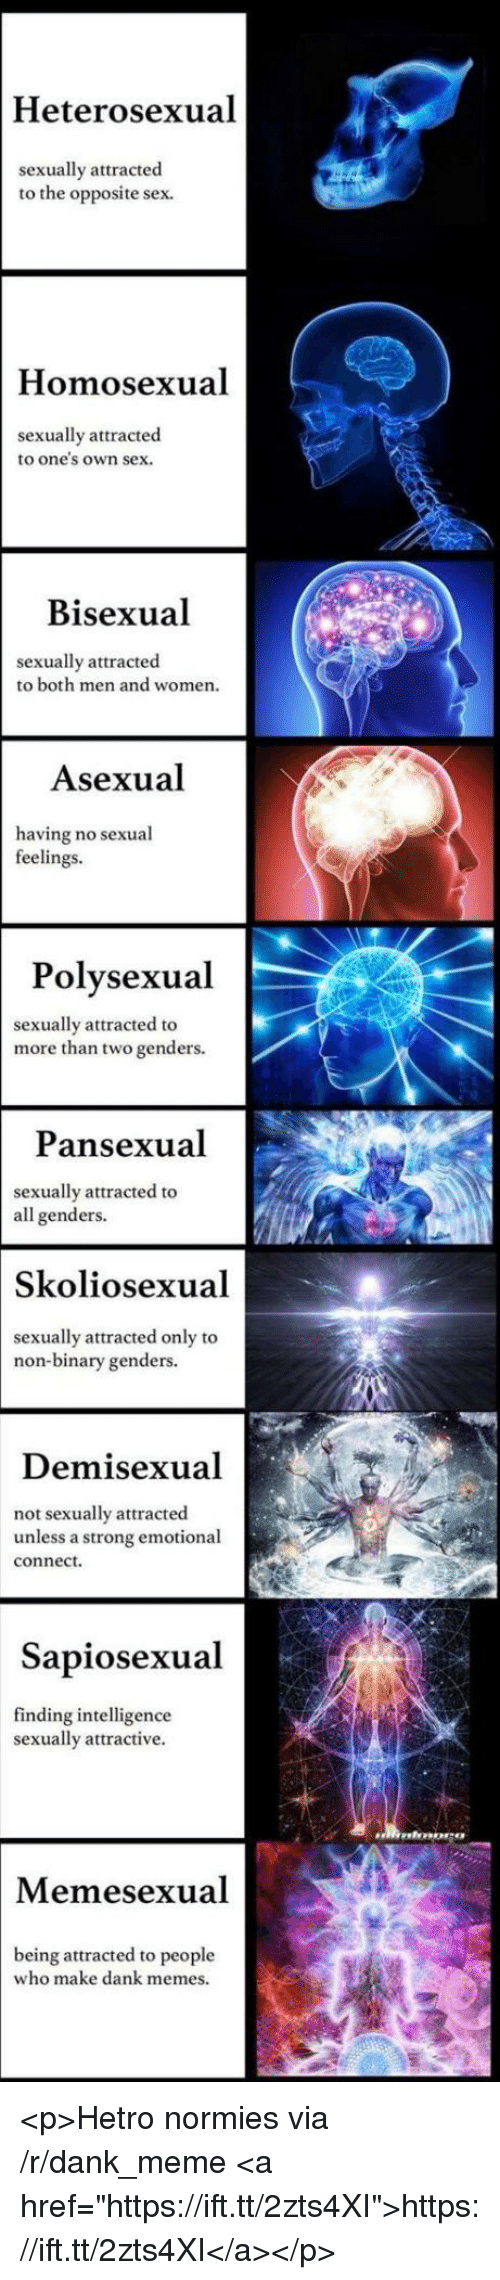 "Dank, Meme, and Memes: Heterosexual  sexually attracted  to the opposite sex.  Homosexual  sexually attracted  to one's own sex.  Bisexual  sexually attracted  to both men and women.  Asexual  having no sexual  feelings.  Polvsexual  sexually attracted to  more than two genders.  Pansexual  sexually attracted to  all genders.  Skoliosexual  sexually attracted only to  non-binary genders.  Demisexual  ot sexually attracted  unless a strong emotional  connect.  Sapiosexual  finding intelligence  sexually attractive.  Memesexual  being attracted to people  who make dank memes. <p>Hetro normies via /r/dank_meme <a href=""https://ift.tt/2zts4XI"">https://ift.tt/2zts4XI</a></p>"